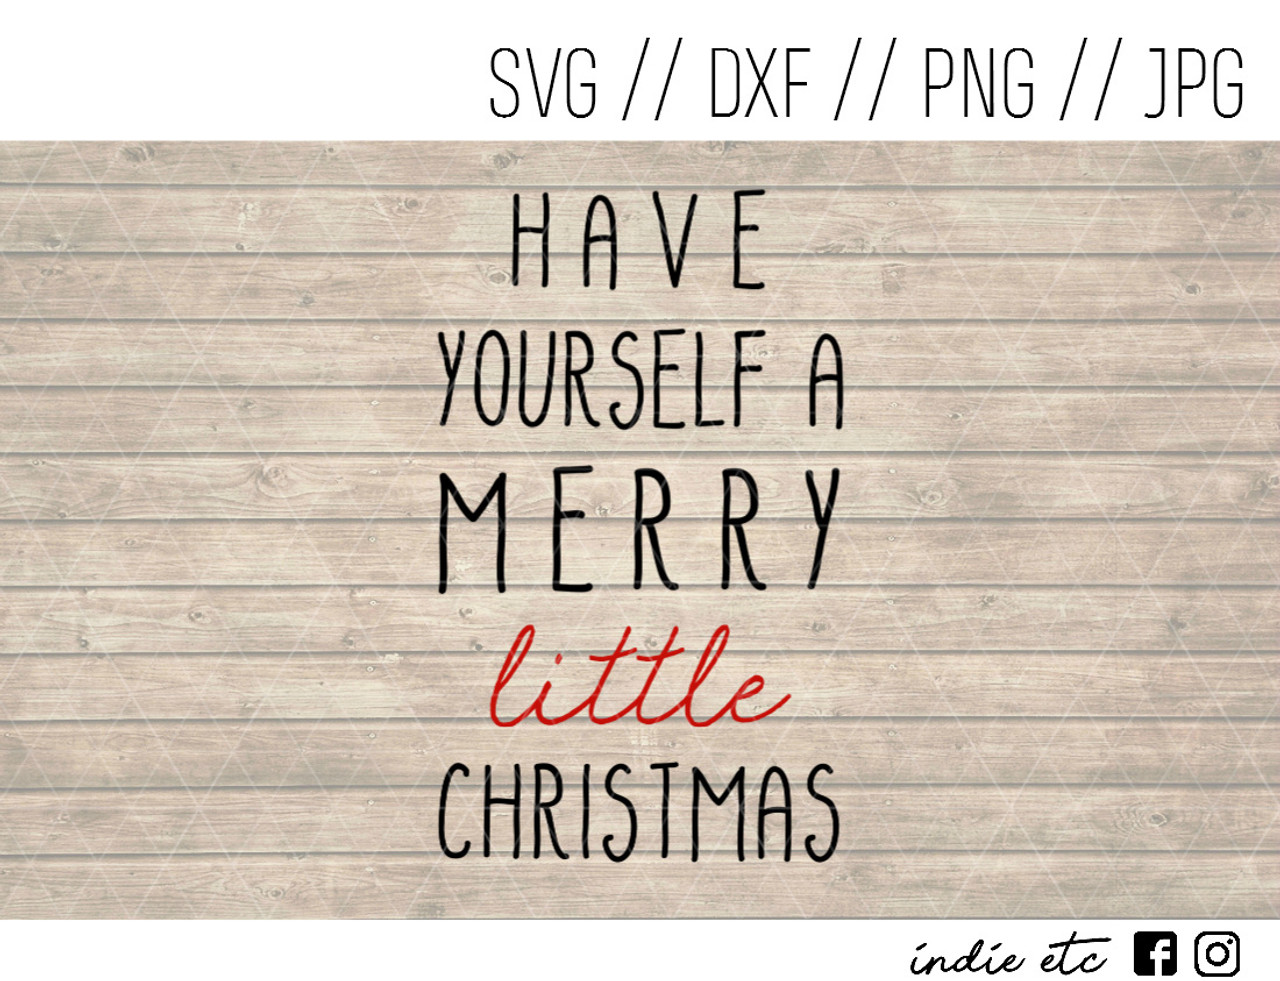 Have Yourself A Merry Little Christmas Svg.Have Yourself A Merry Little Christmas Digital Art File Svg Png Jpeg Dxf Cut File